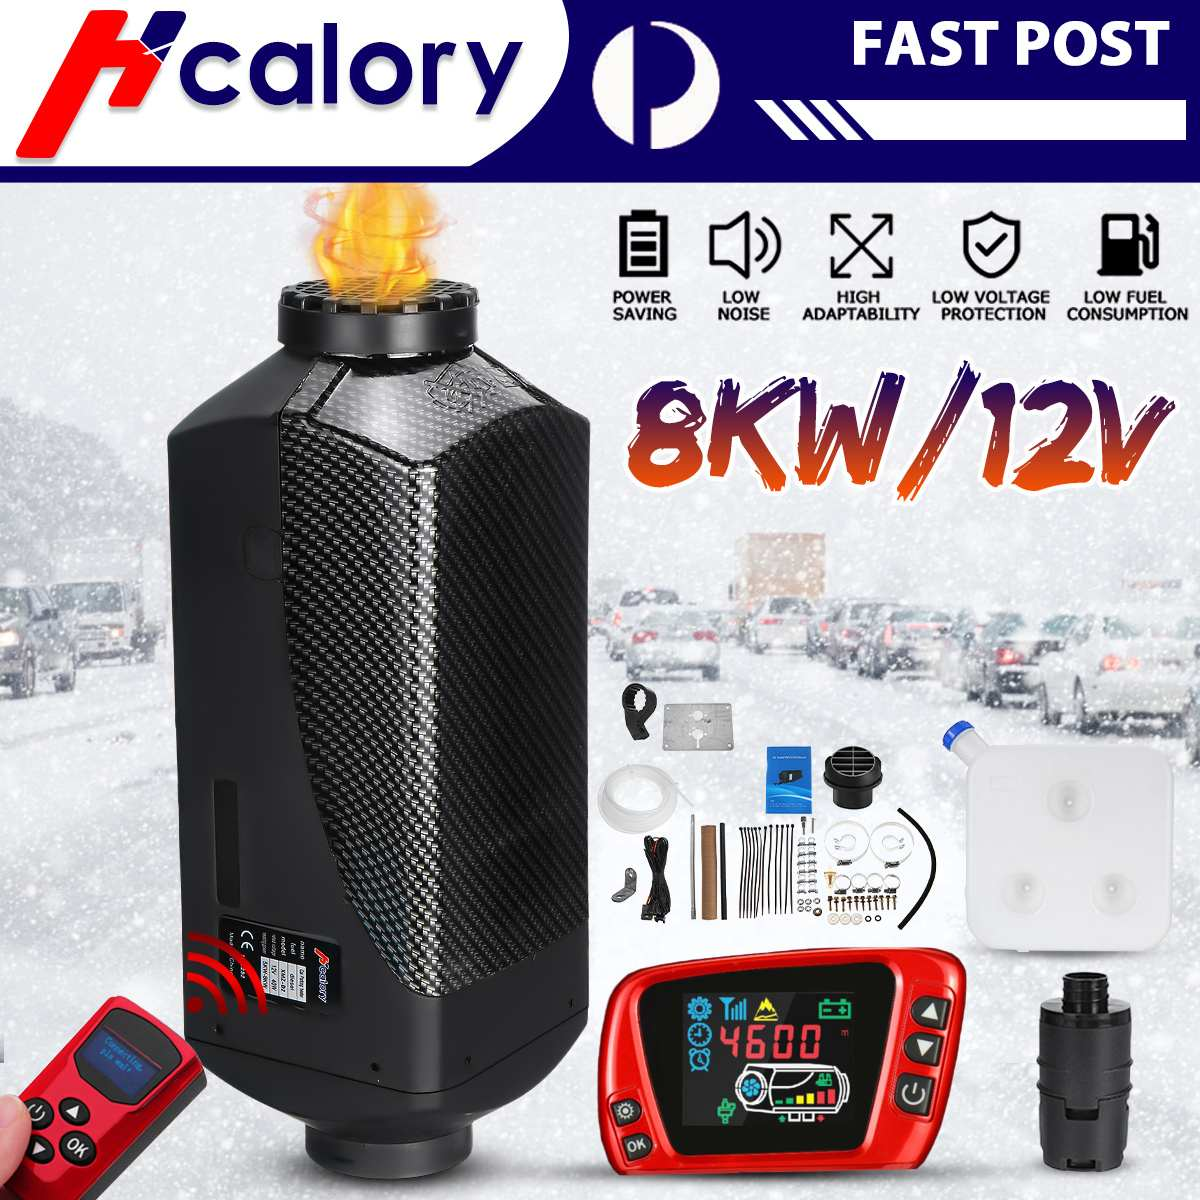 HCalory Air Diesels Heater 8KW 12V Singal Hole Car Heater For Trucks Motor-Home Boats Bus +LCD Switch +Silencer+Remote Control